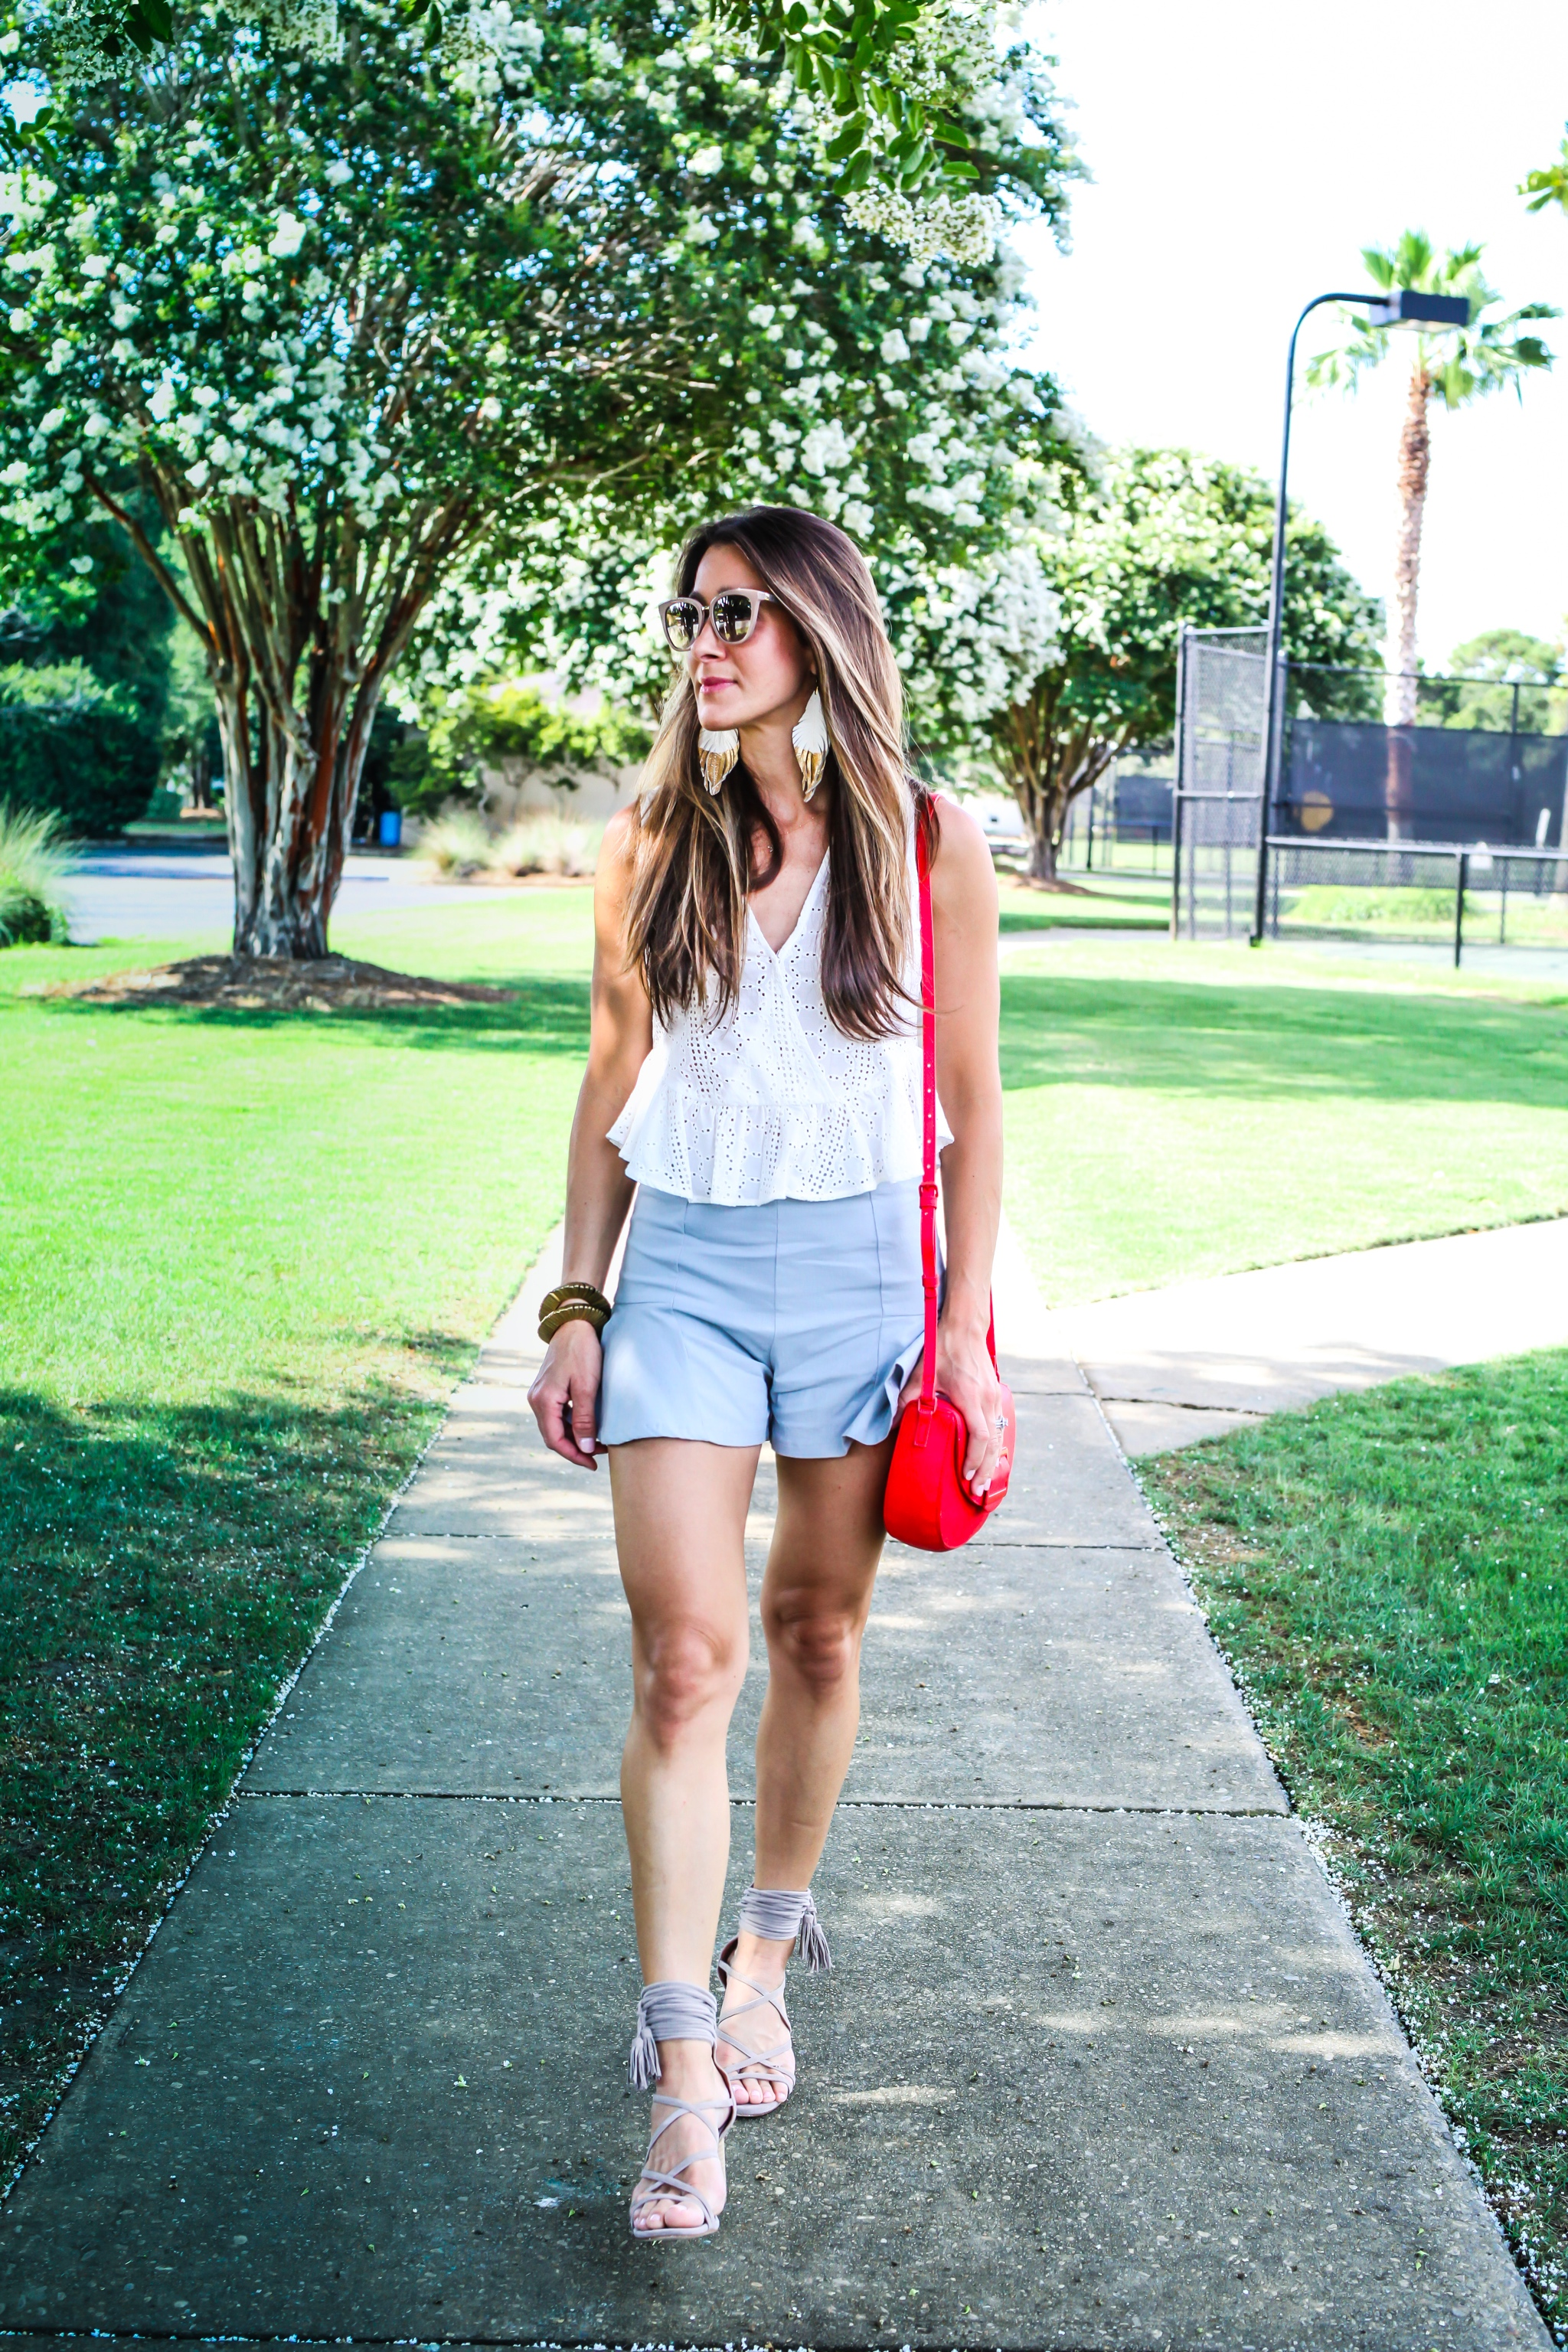 TOP - BCBG -  HERE  AND  HERE  | SHORTS - MINKPINK SIMILAR  HERE  | SHOES - JEFFREY CAMPBELL  HERE  | EARRINGS - MIA K DESIGNS - HERE | BRACELET STACK - SPROUTS DESIGNS -  HERE  | LIPSTICK -  NARS | HANDBAG -  TARGET